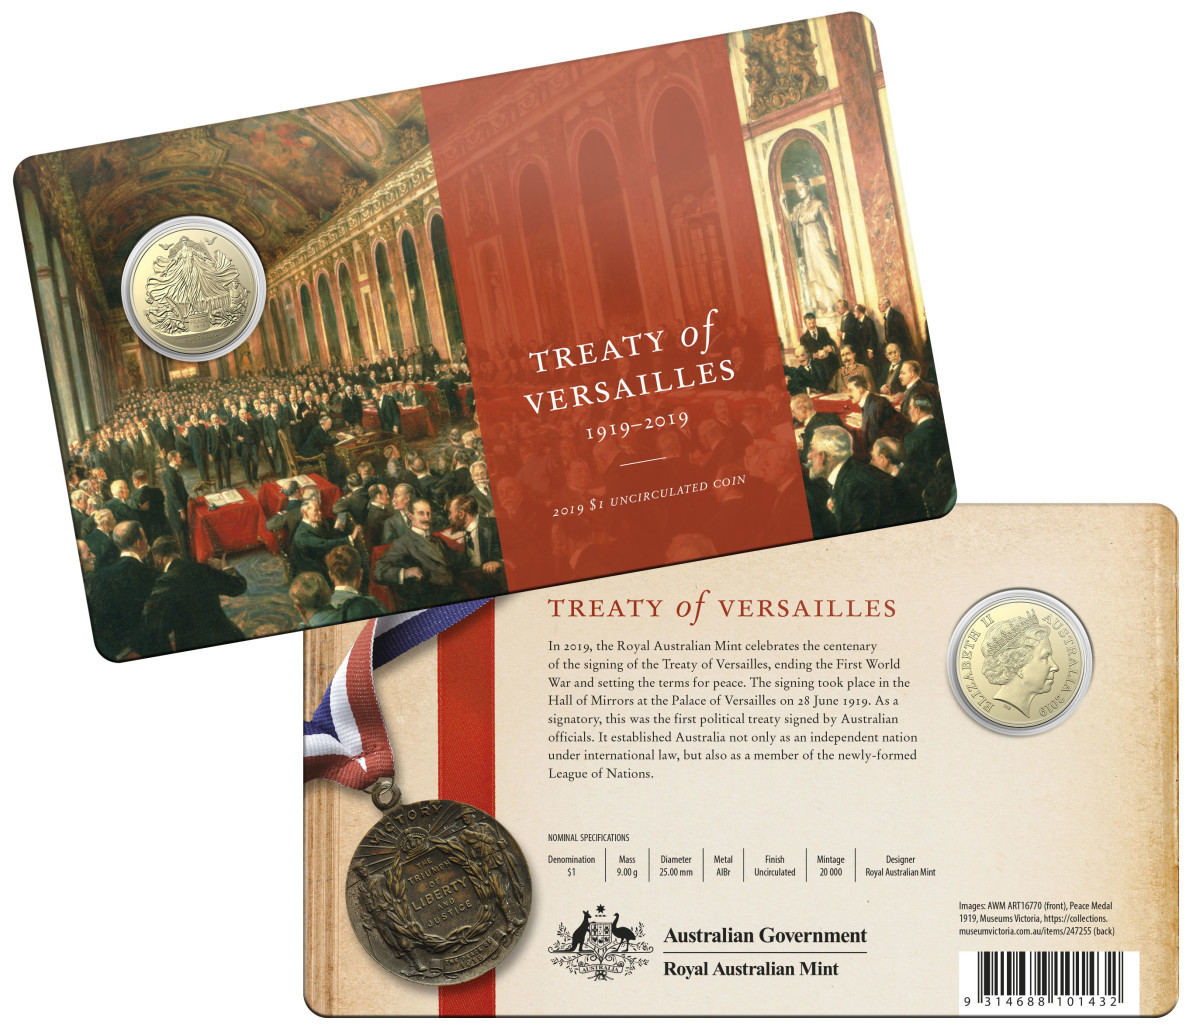 Centenary of the Treaty of Versailles - 2019 $1 Uncirculated Coin - Packaging